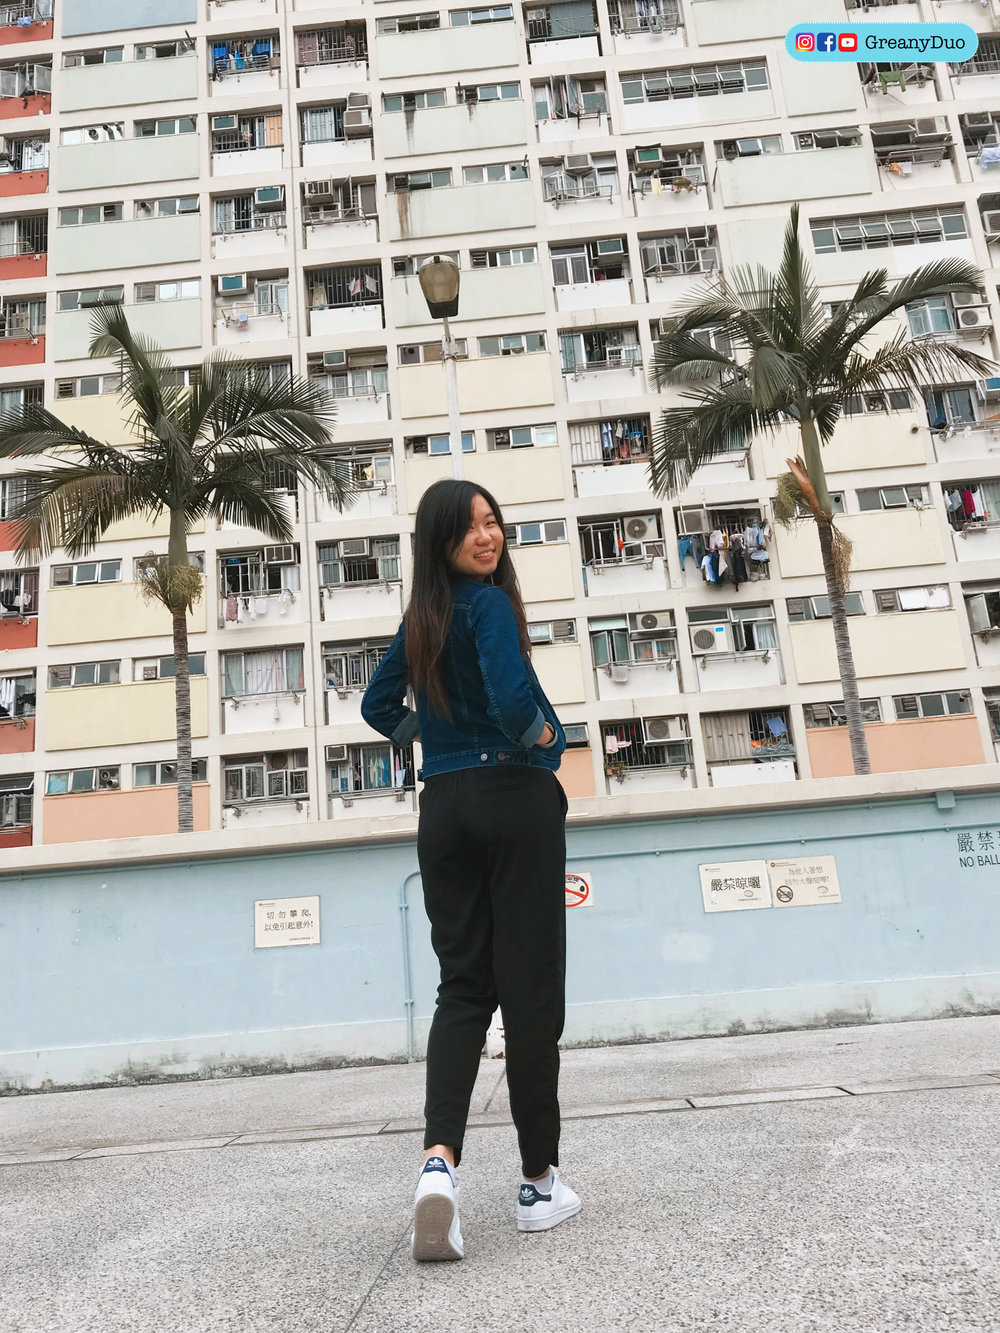 tina in front of Choi Hung Estate